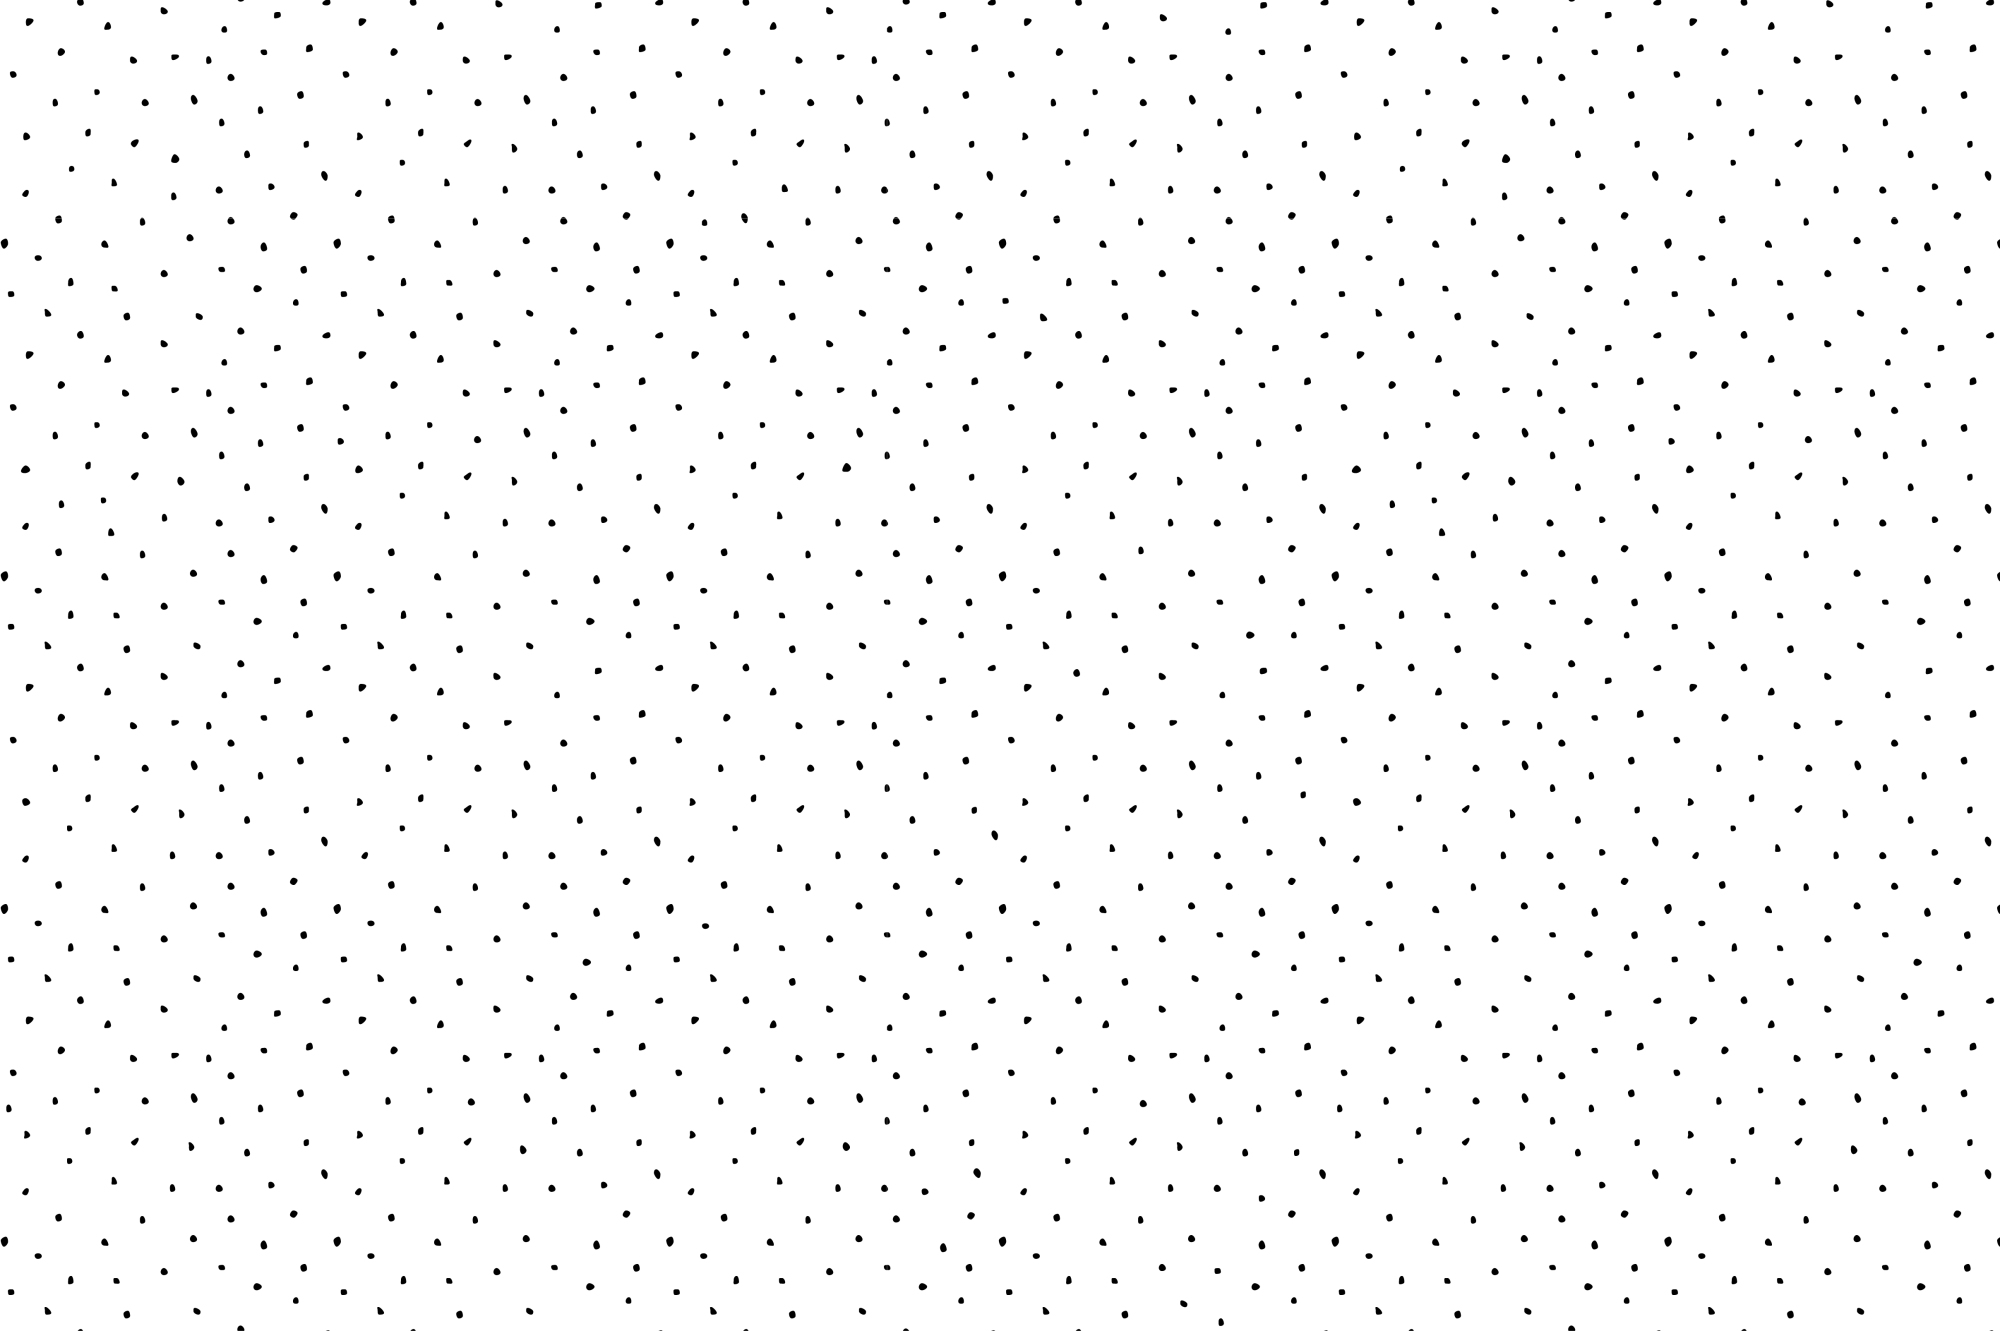 Swatches memphis seamless patterns. example image 8